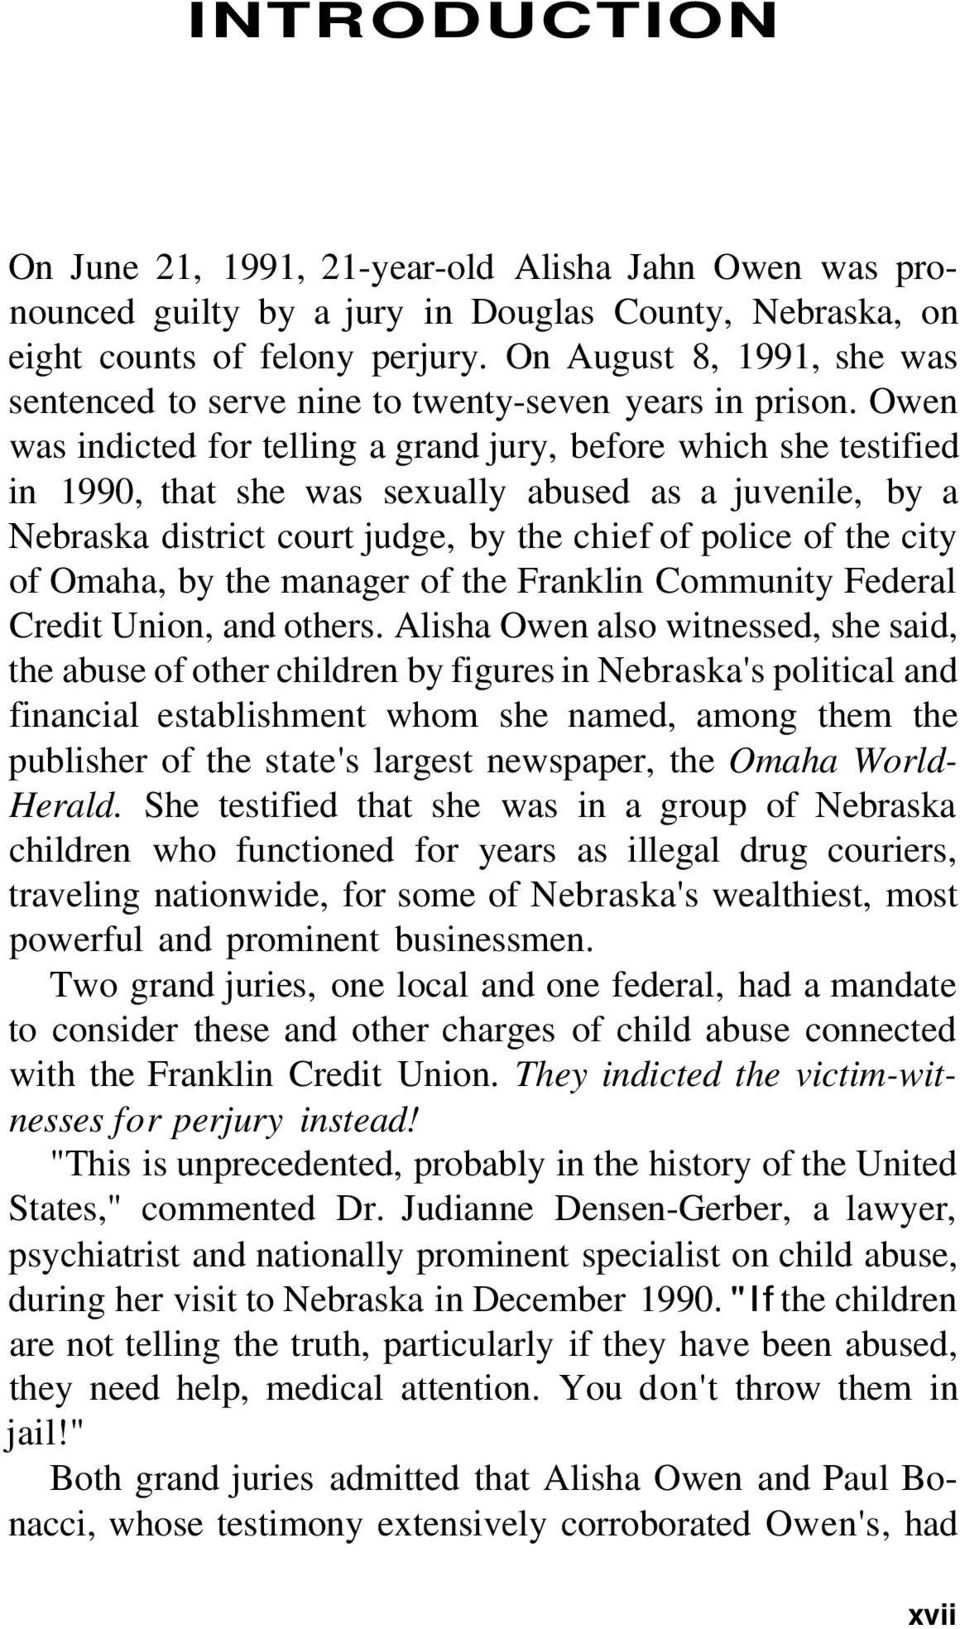 Owen was indicted for telling a grand jury, before which she testified in 1990, that she was sexually abused as a juvenile, by a Nebraska district court judge, by the chief of police of the city of